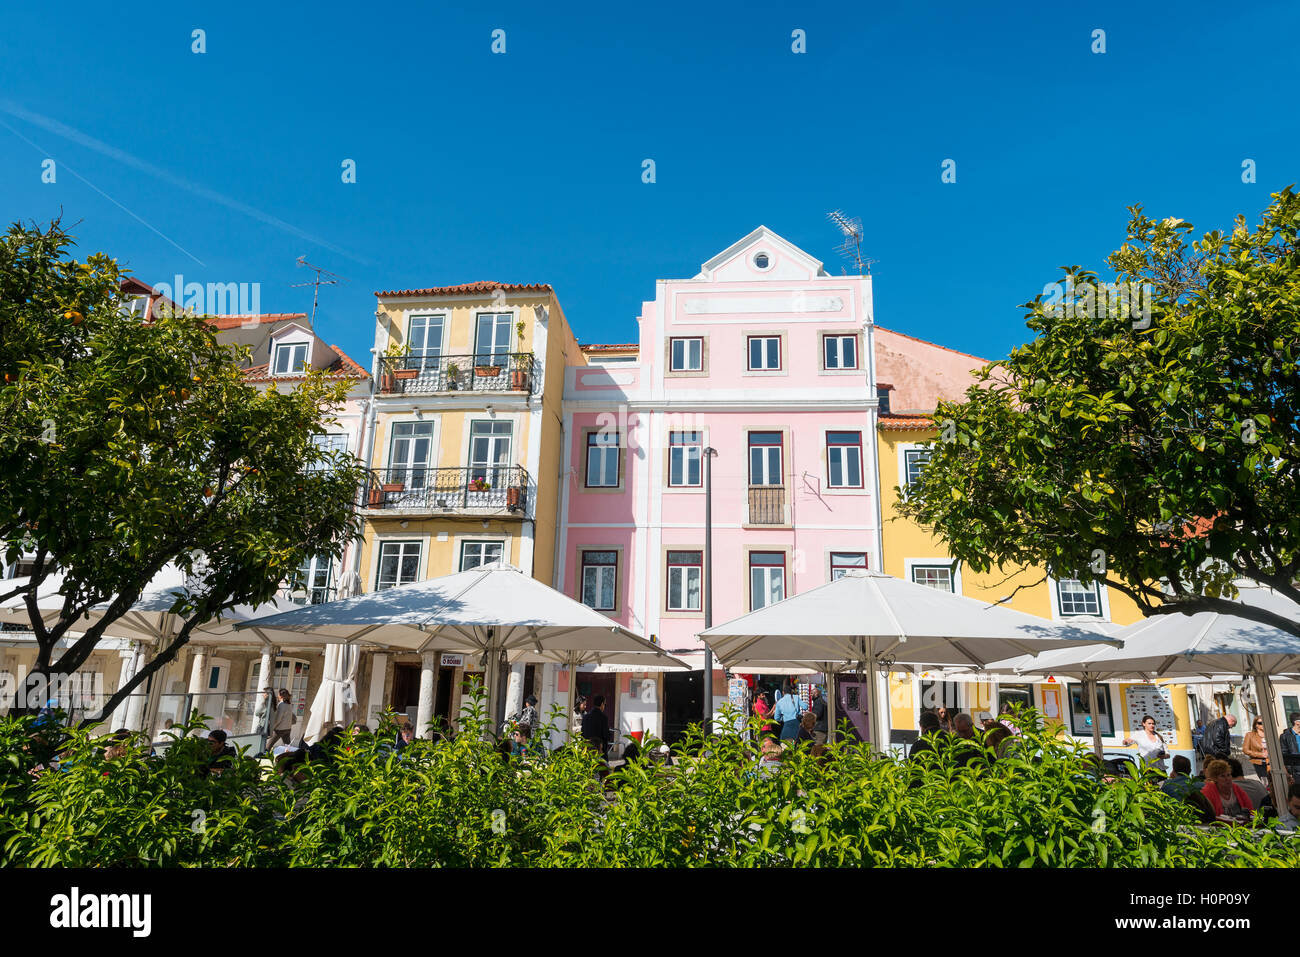 Colourful houses, Belém, Lisbon, Portugal - Stock Image